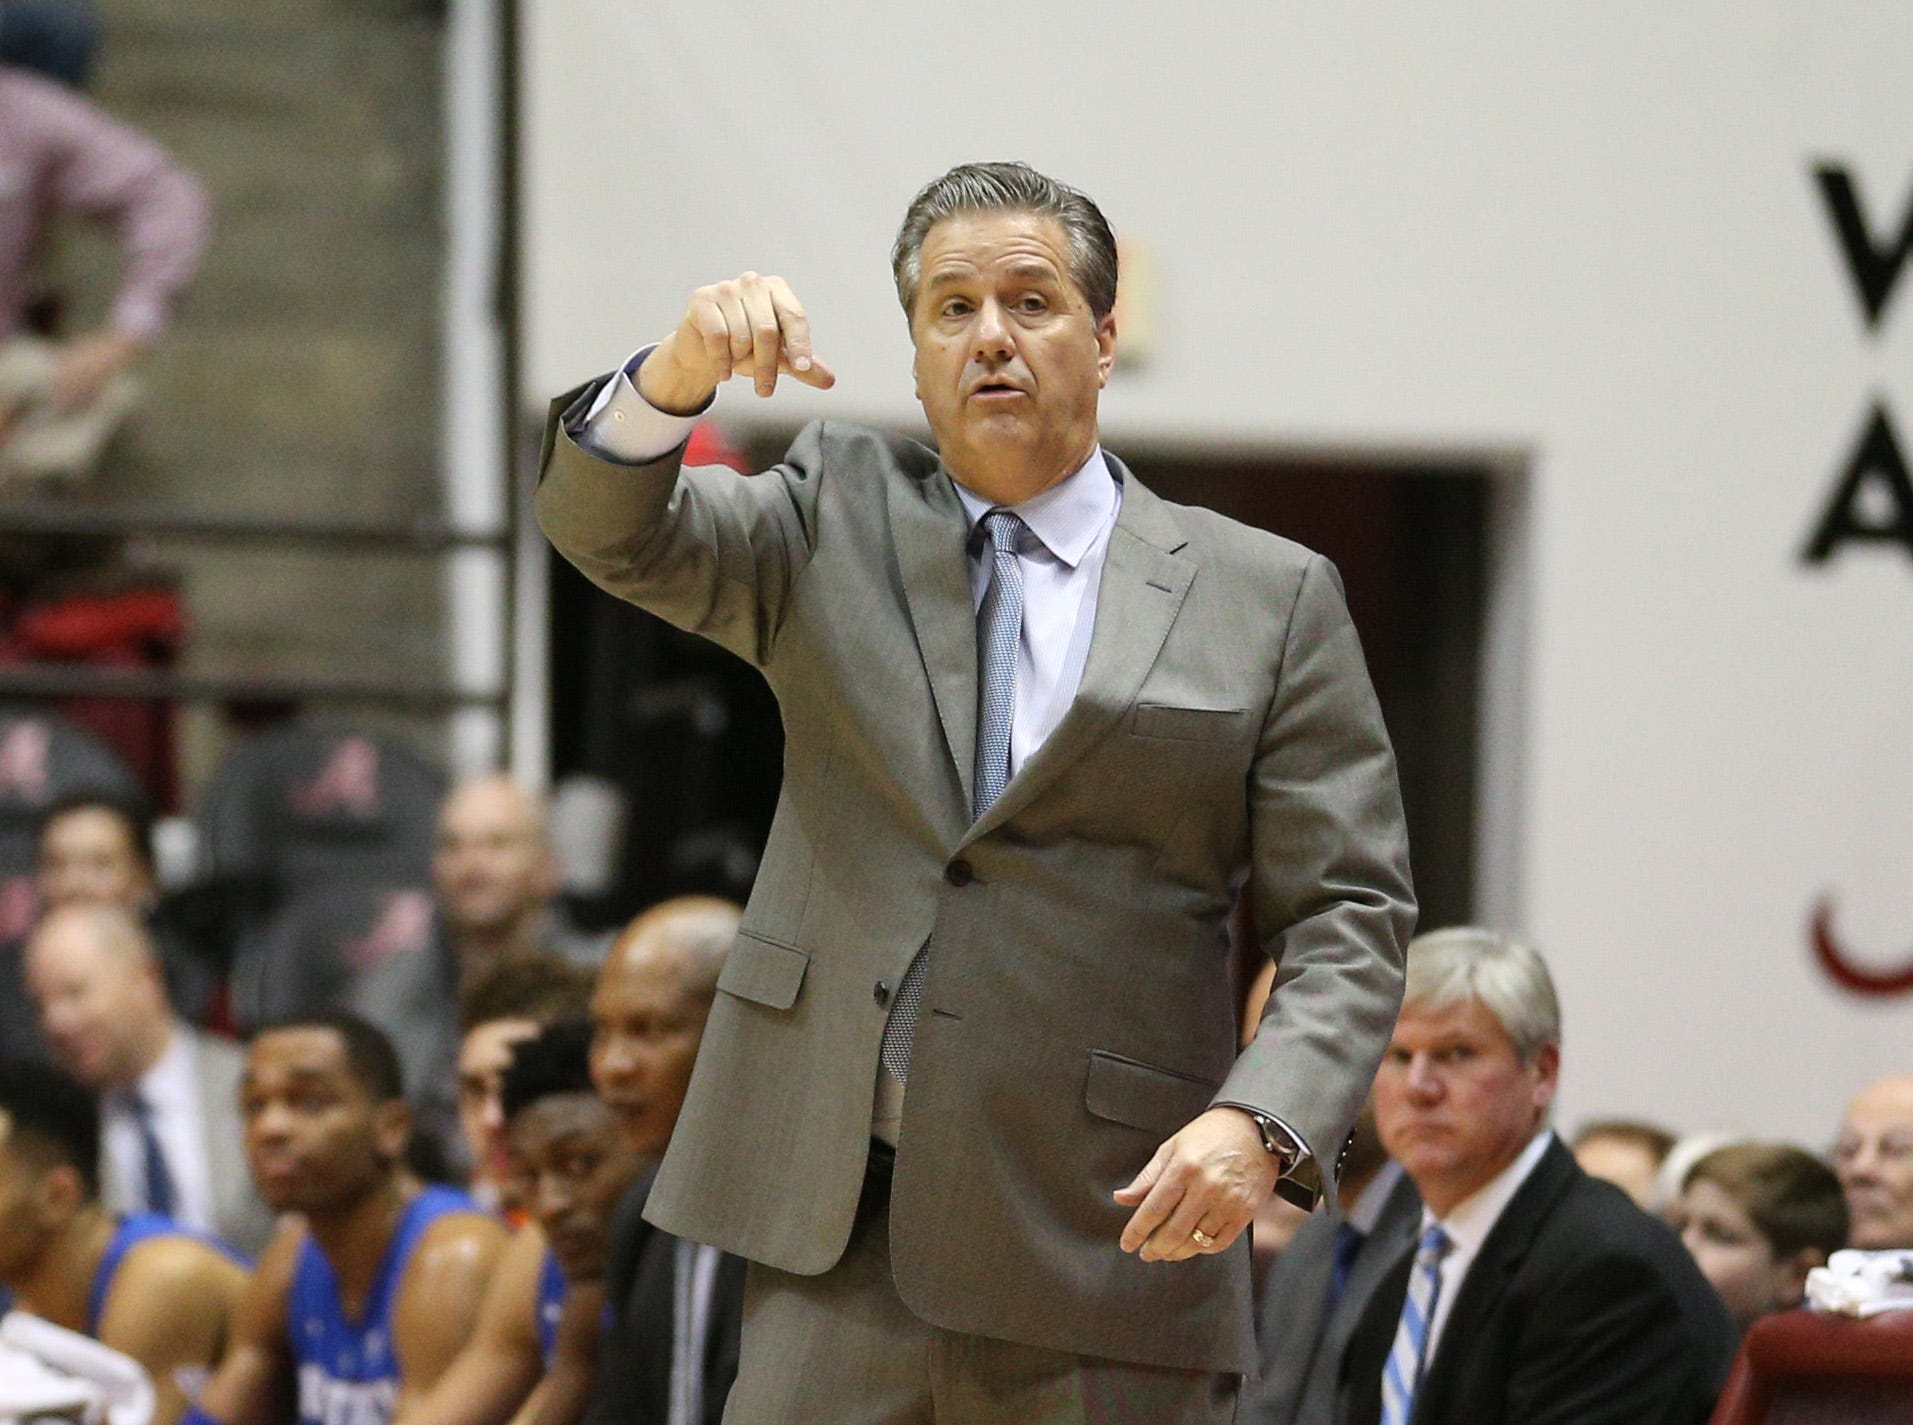 Jan 5, 2019; Tuscaloosa, AL, USA; Kentucky Wildcats head coach John Calipari during the first half against Alabama Crimson Tide at Coleman Coliseum. Mandatory Credit: Marvin Gentry-USA TODAY Sports